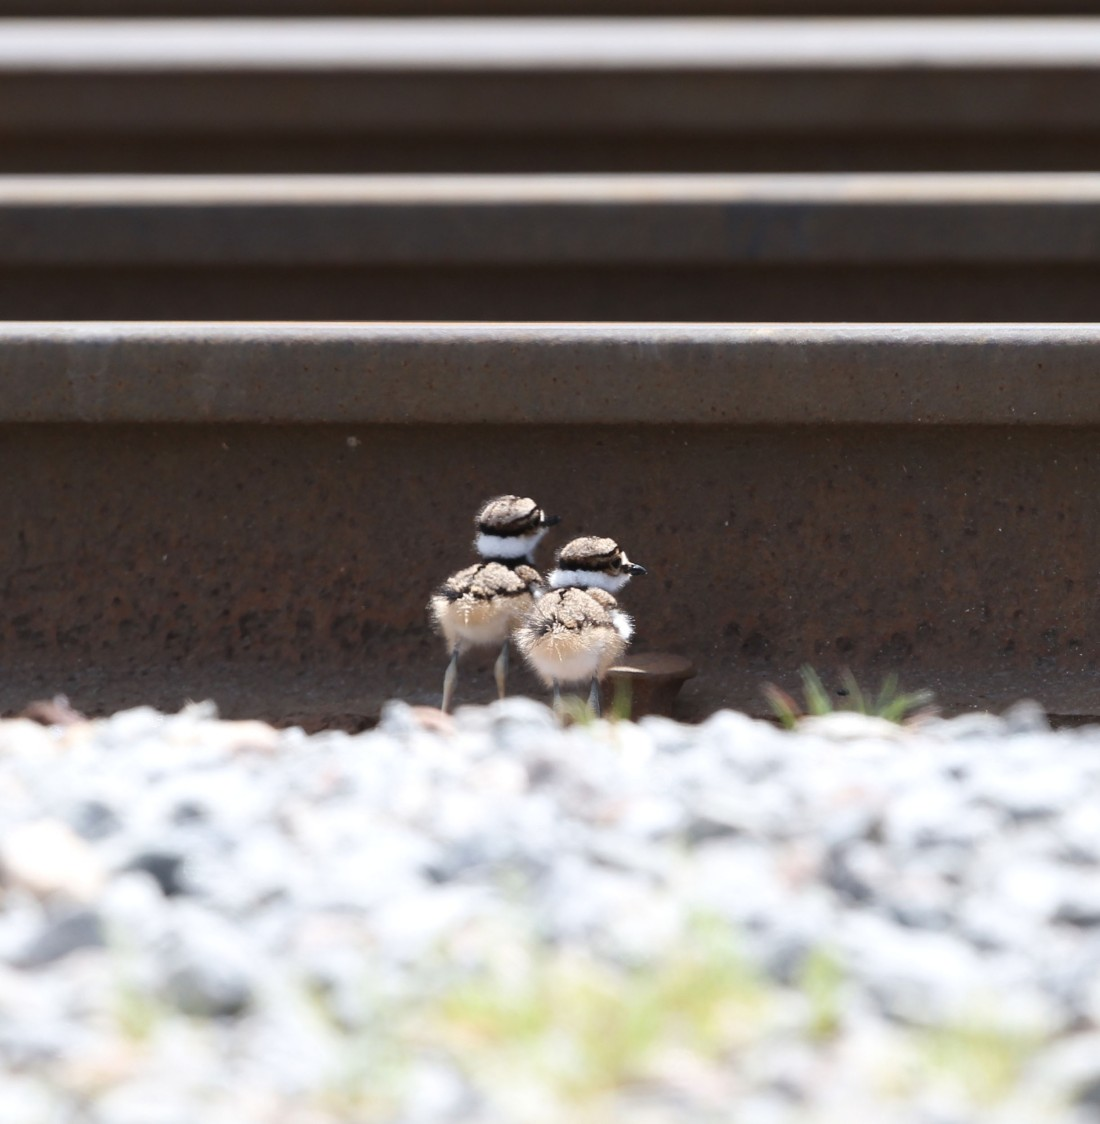 Killdeer chicks on a railroad bed